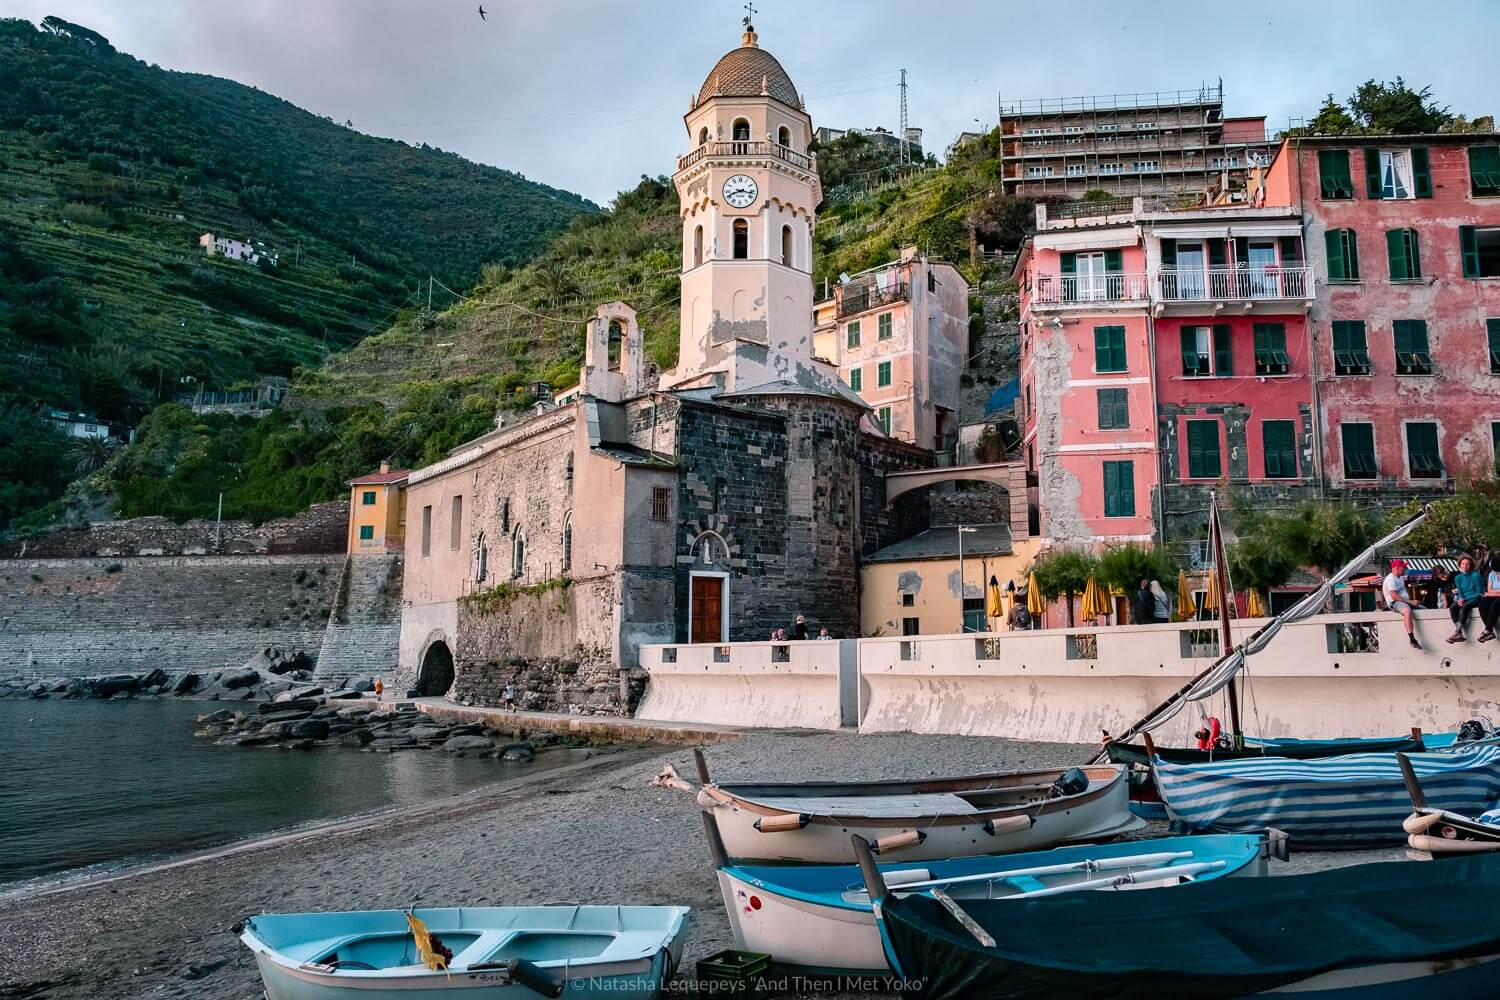 """The beach of Vernazza, Cinque Terre. Travel photography and guide by © Natasha Lequepeys for """"And Then I Met Yoko"""". #cinqueterre #italy #travelphotography"""